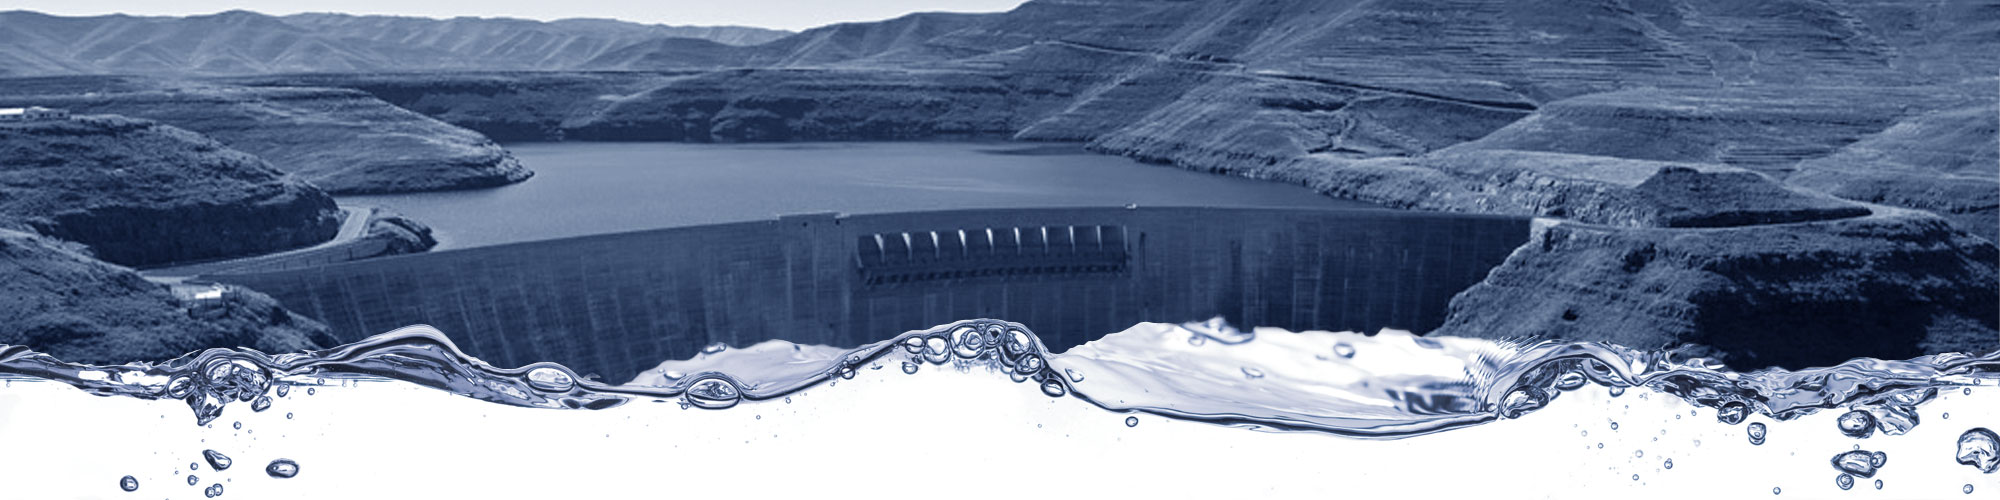 AFRICA-lesotho-dam-laundry-catering